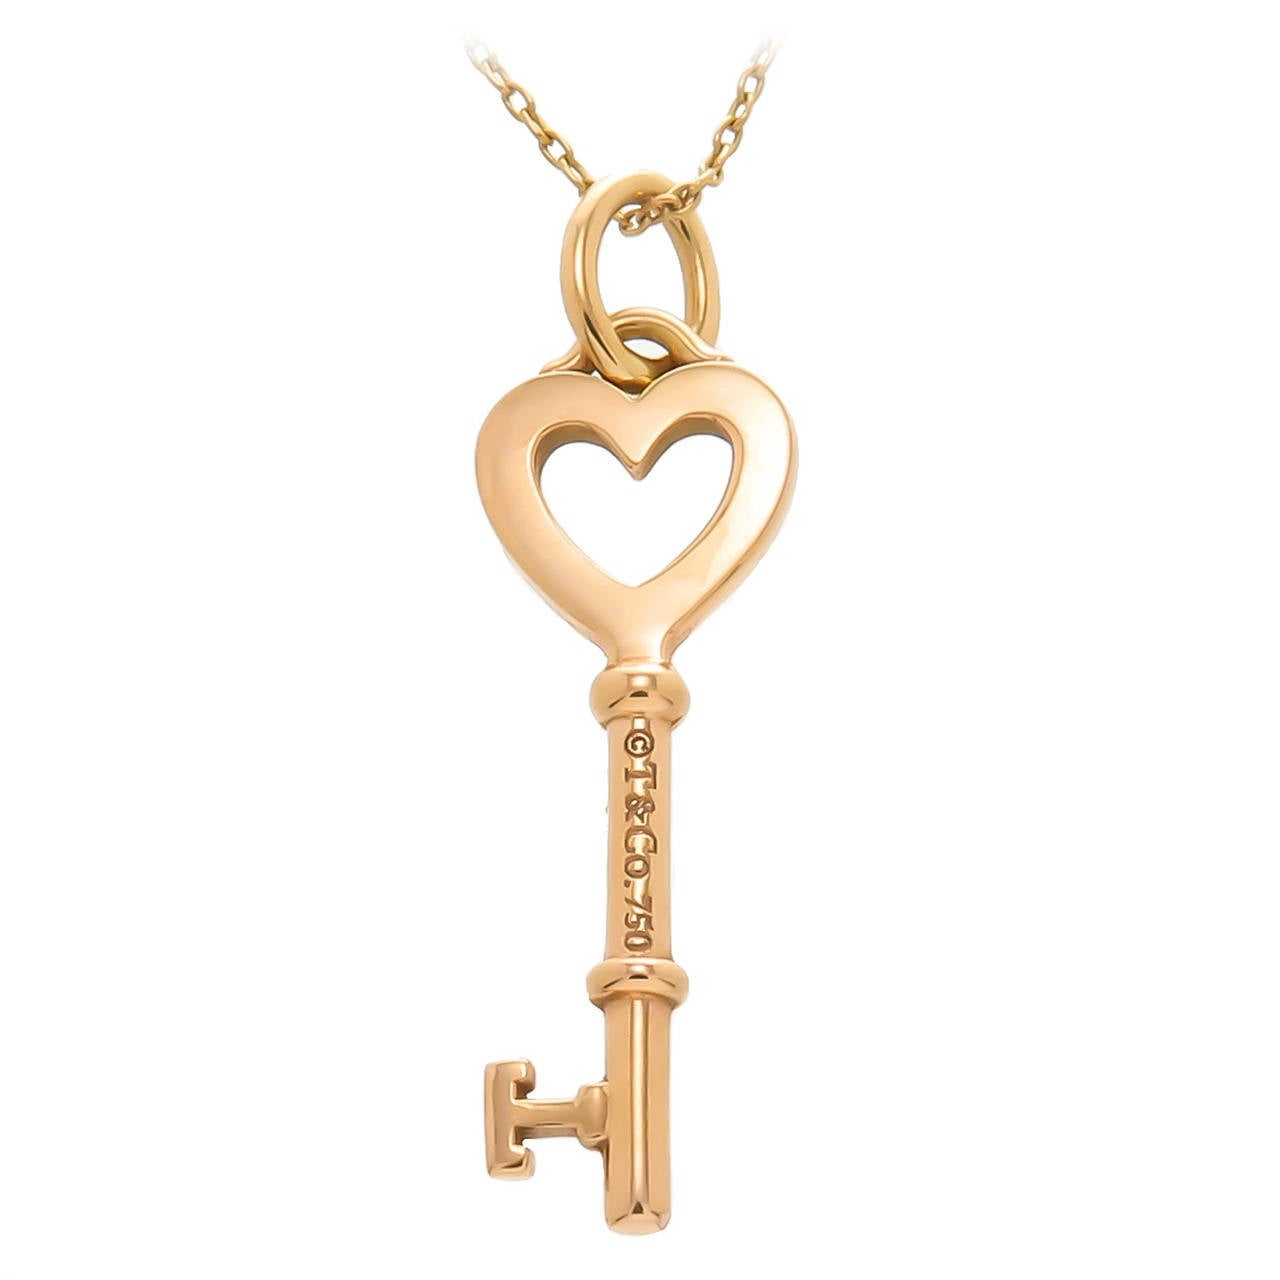 and co gold key pendant at 1stdibs